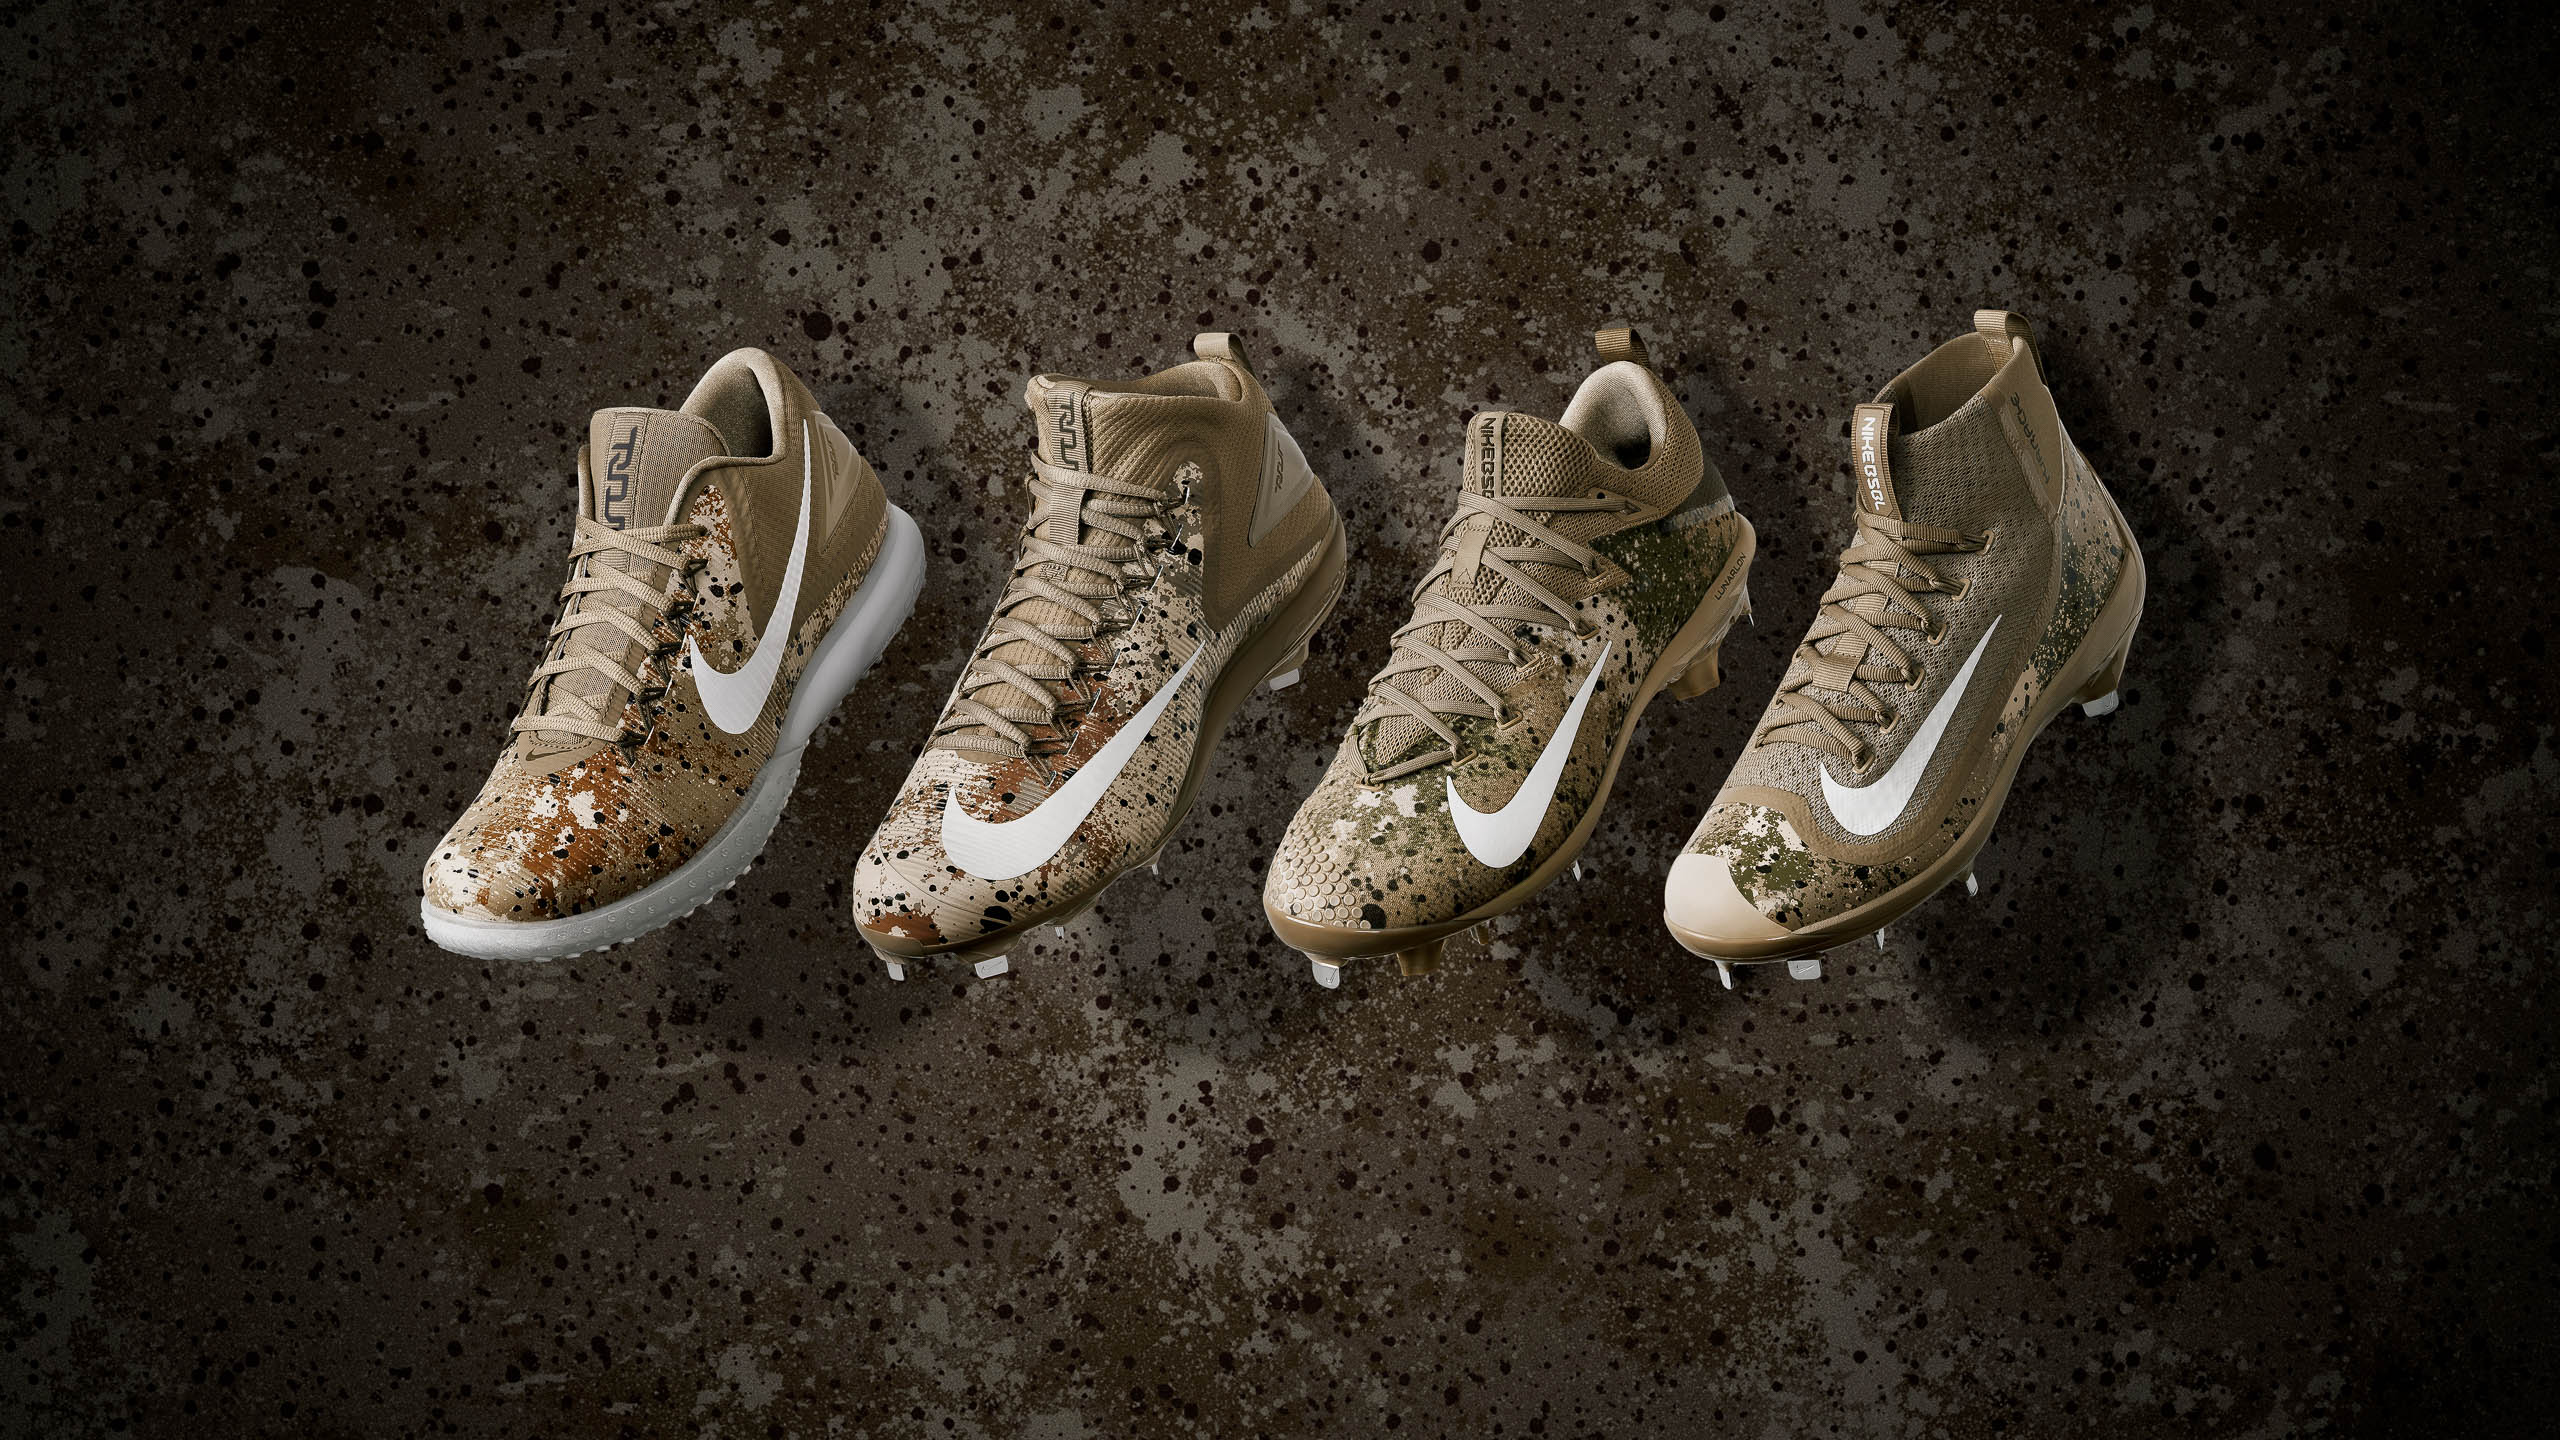 Nike Baseball Mike Trout Memorial cleat and turf footwear